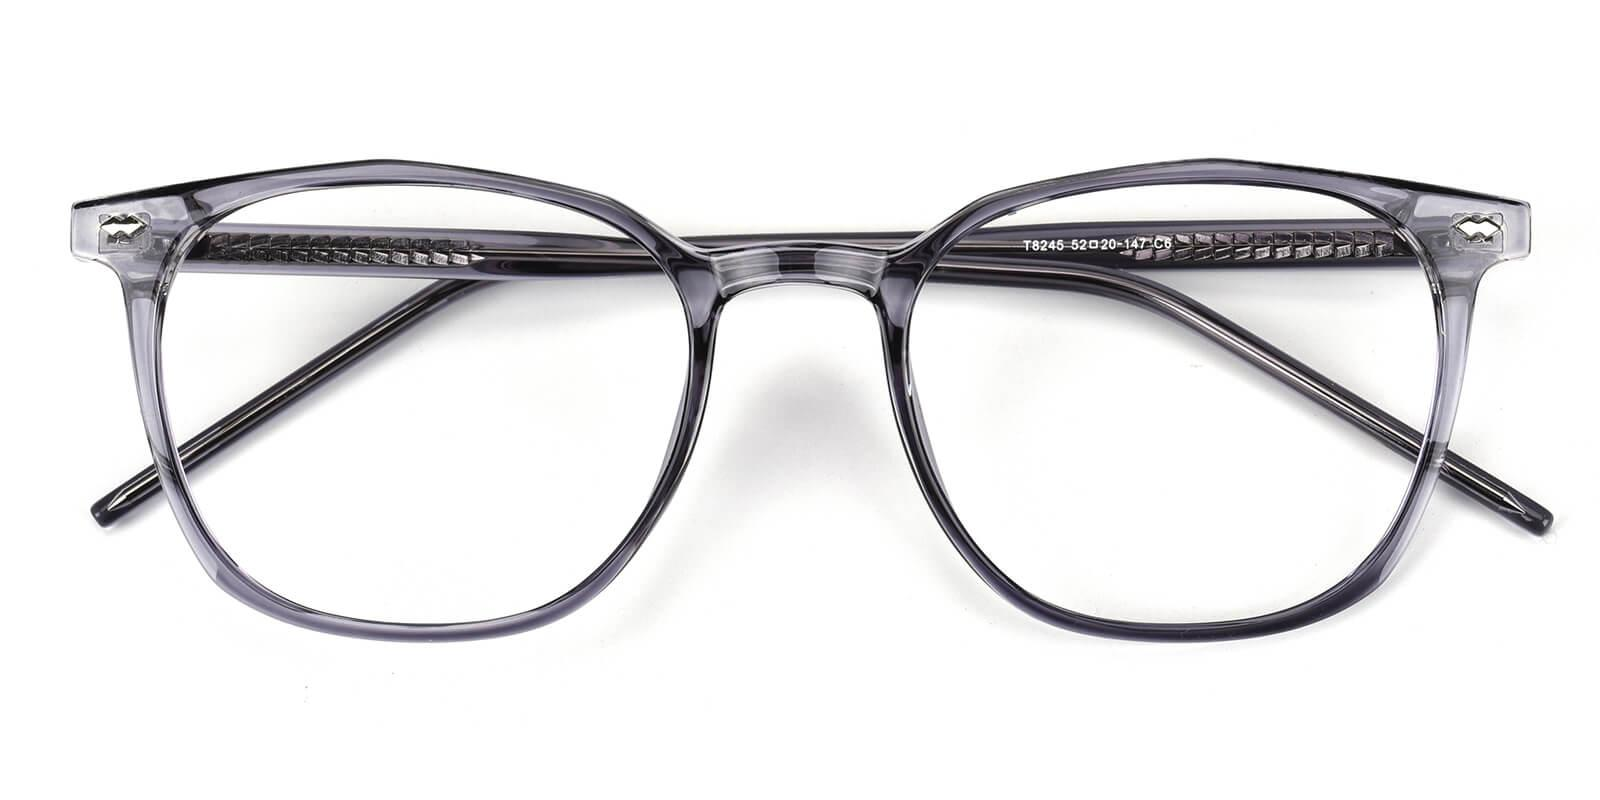 Linking-Gray-Round-Acetate-Eyeglasses-detail